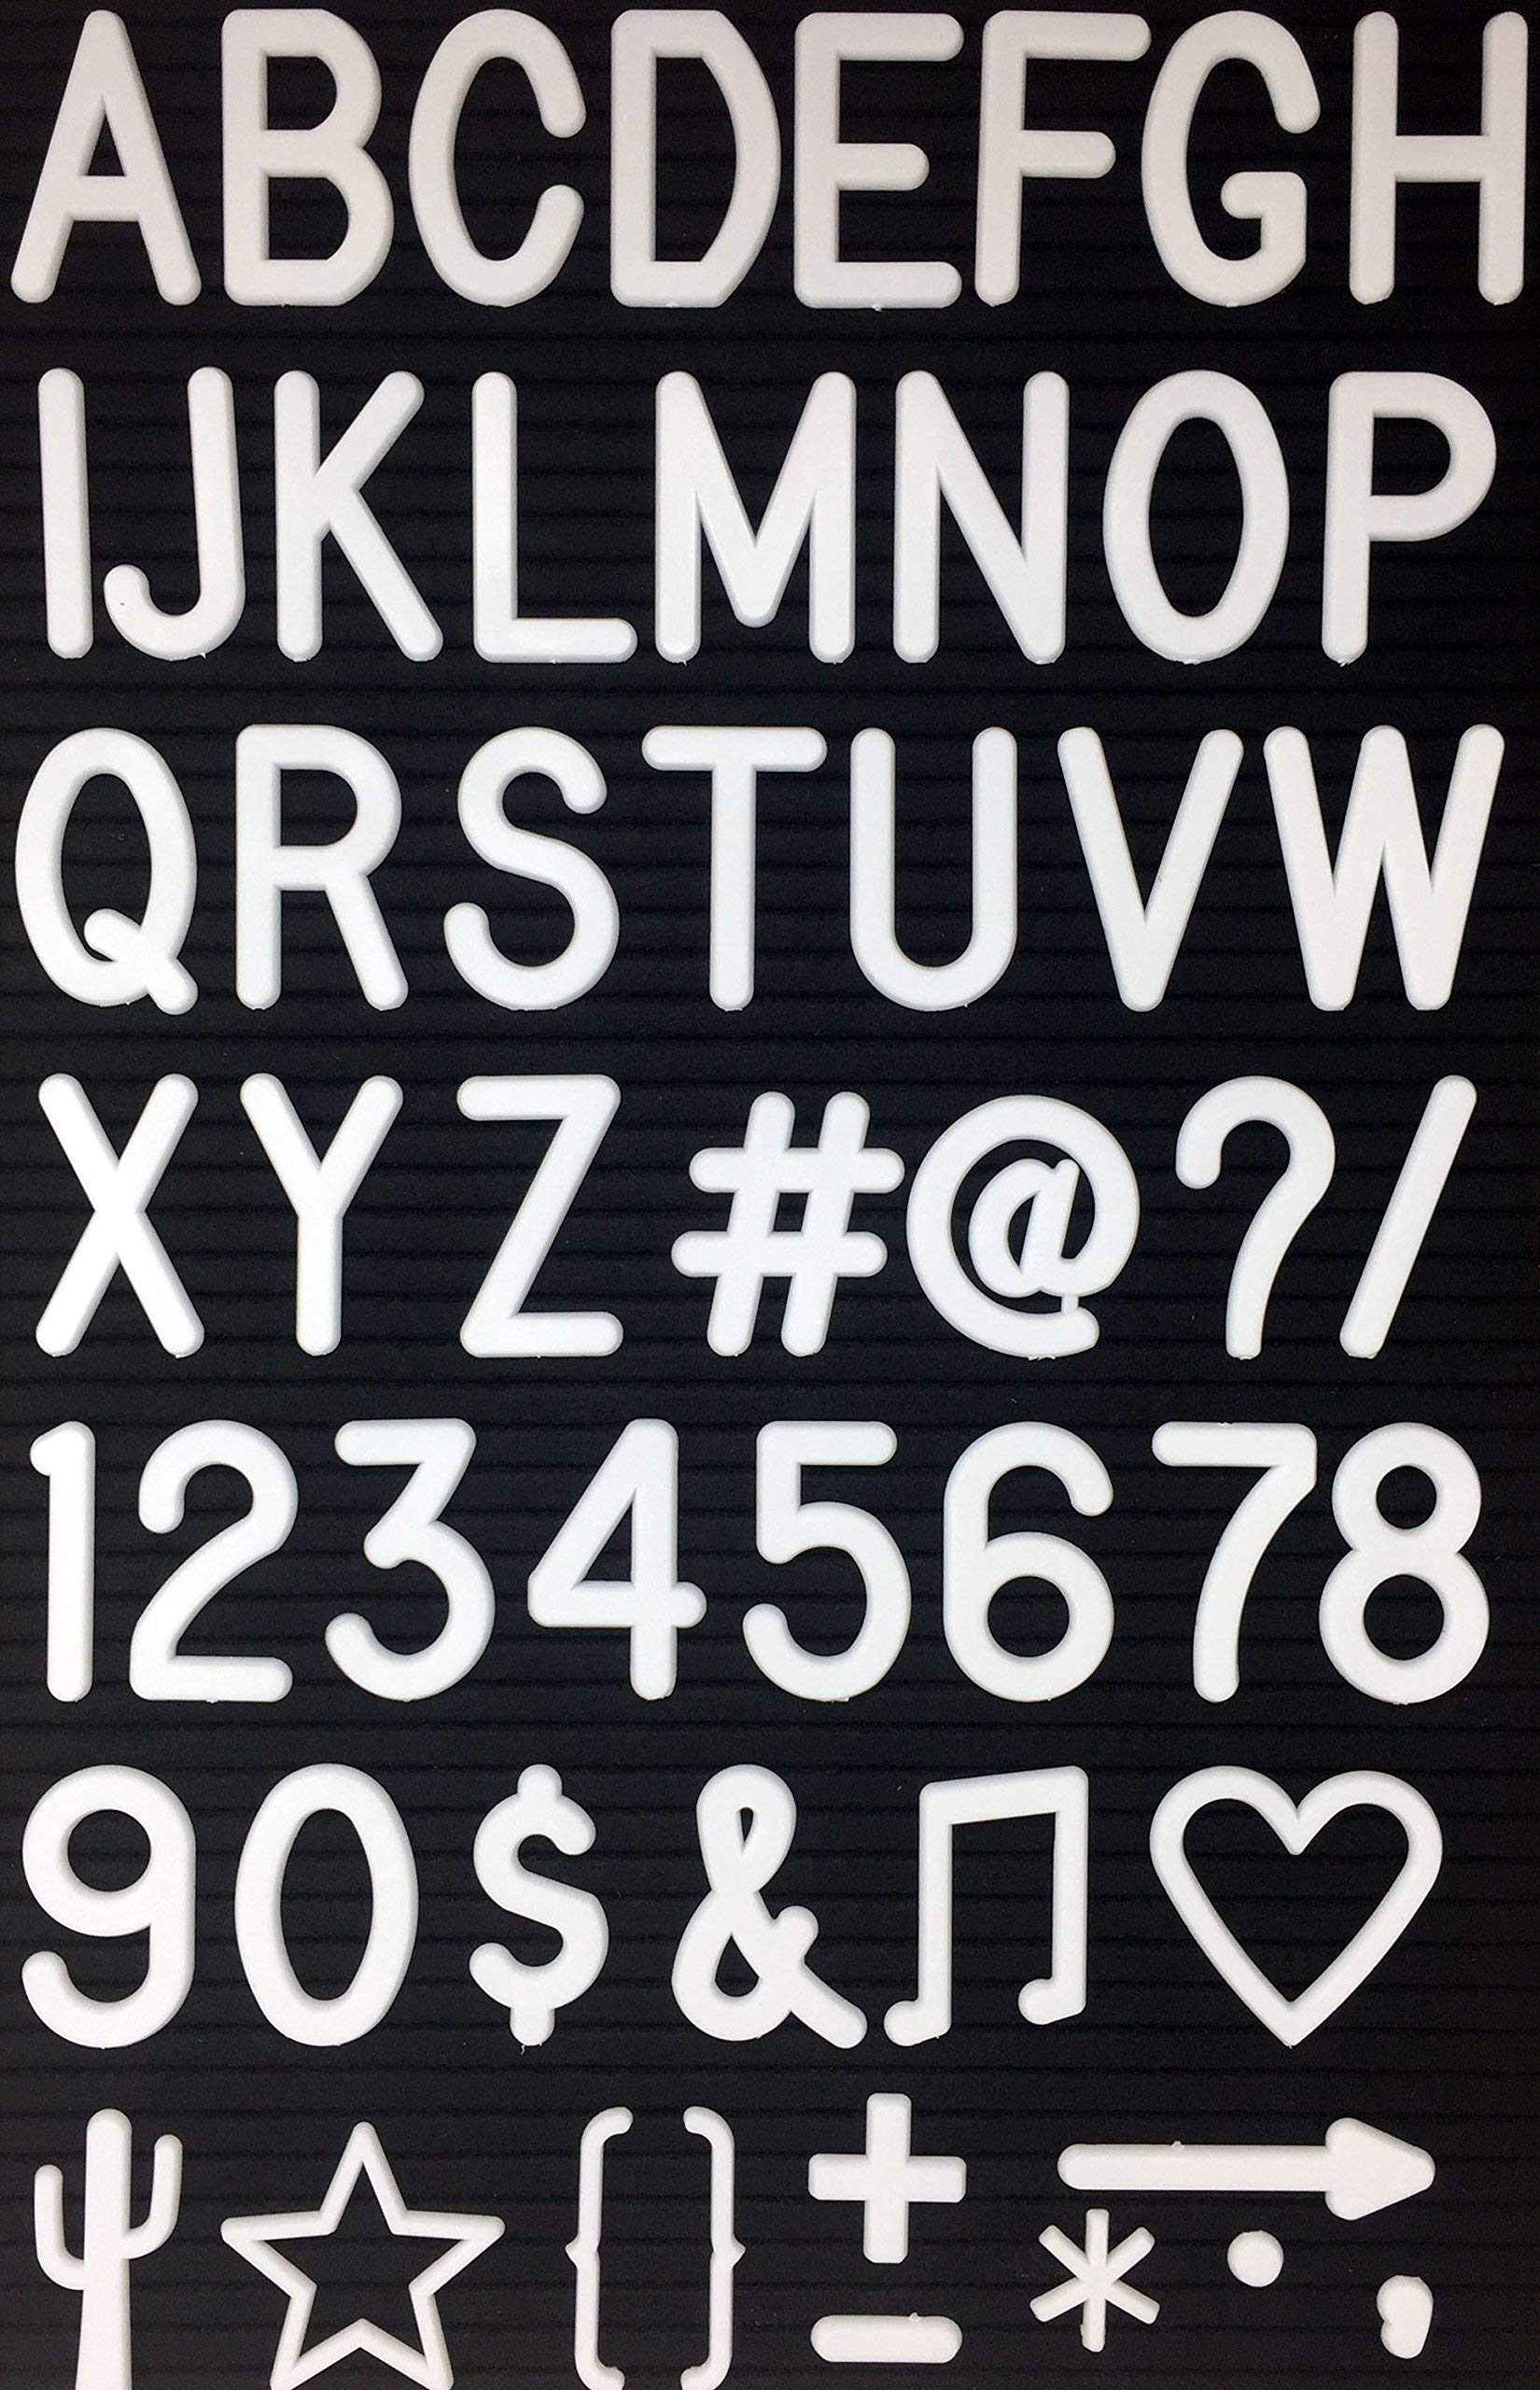 2'' Letters and Characters for Changeable Letter Boards | 186 Characters & Symbols | Includes @ # $ & ♪ and Many More | Bonus Canvas Drawstring Pouch (2'' Letter Set & Bag ONLY) by Word Notions